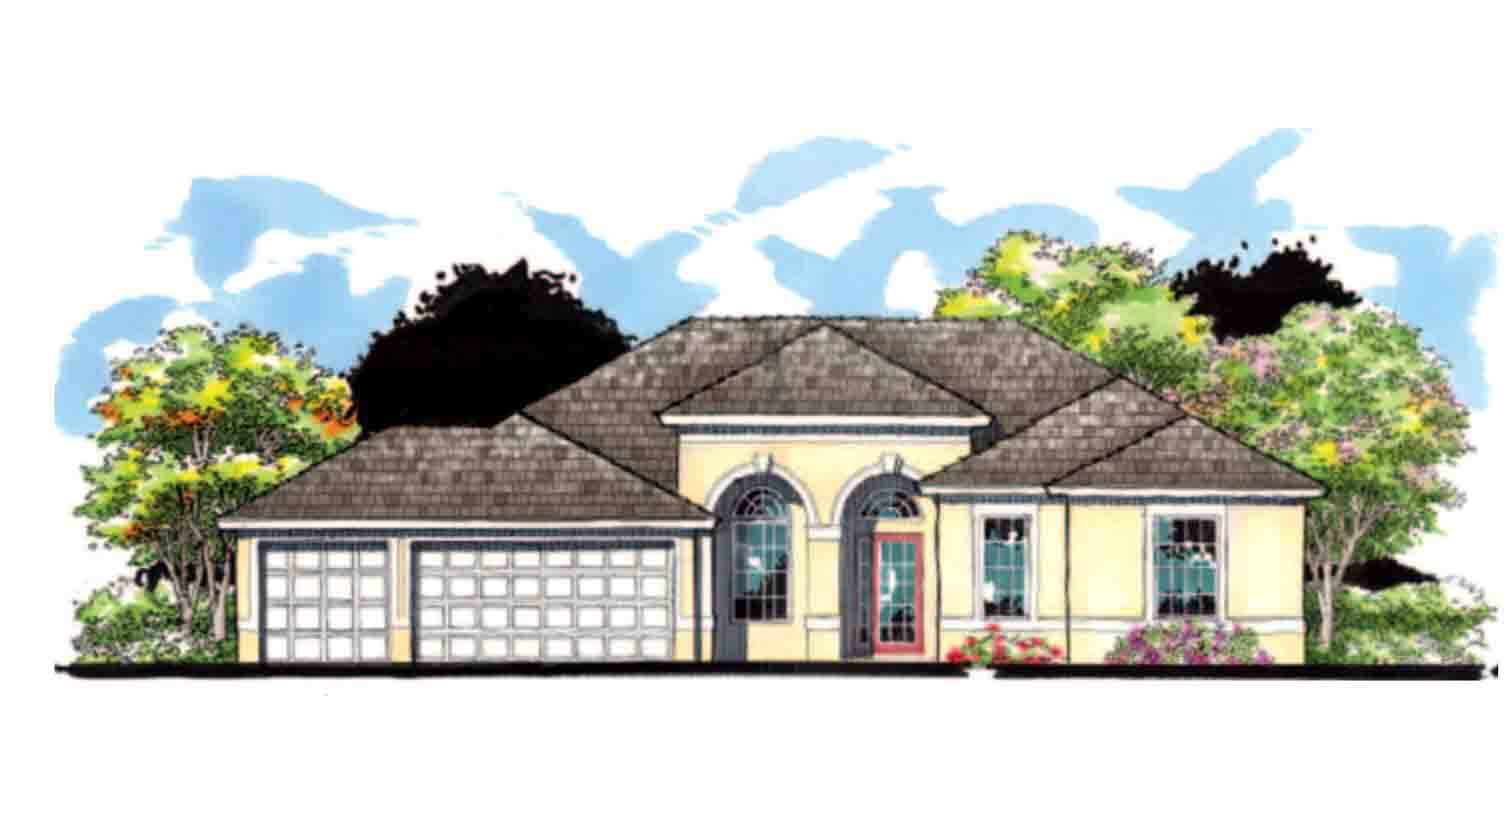 Floor Plans,2,501 SQ FT TO 3,000 SQ FT,1075